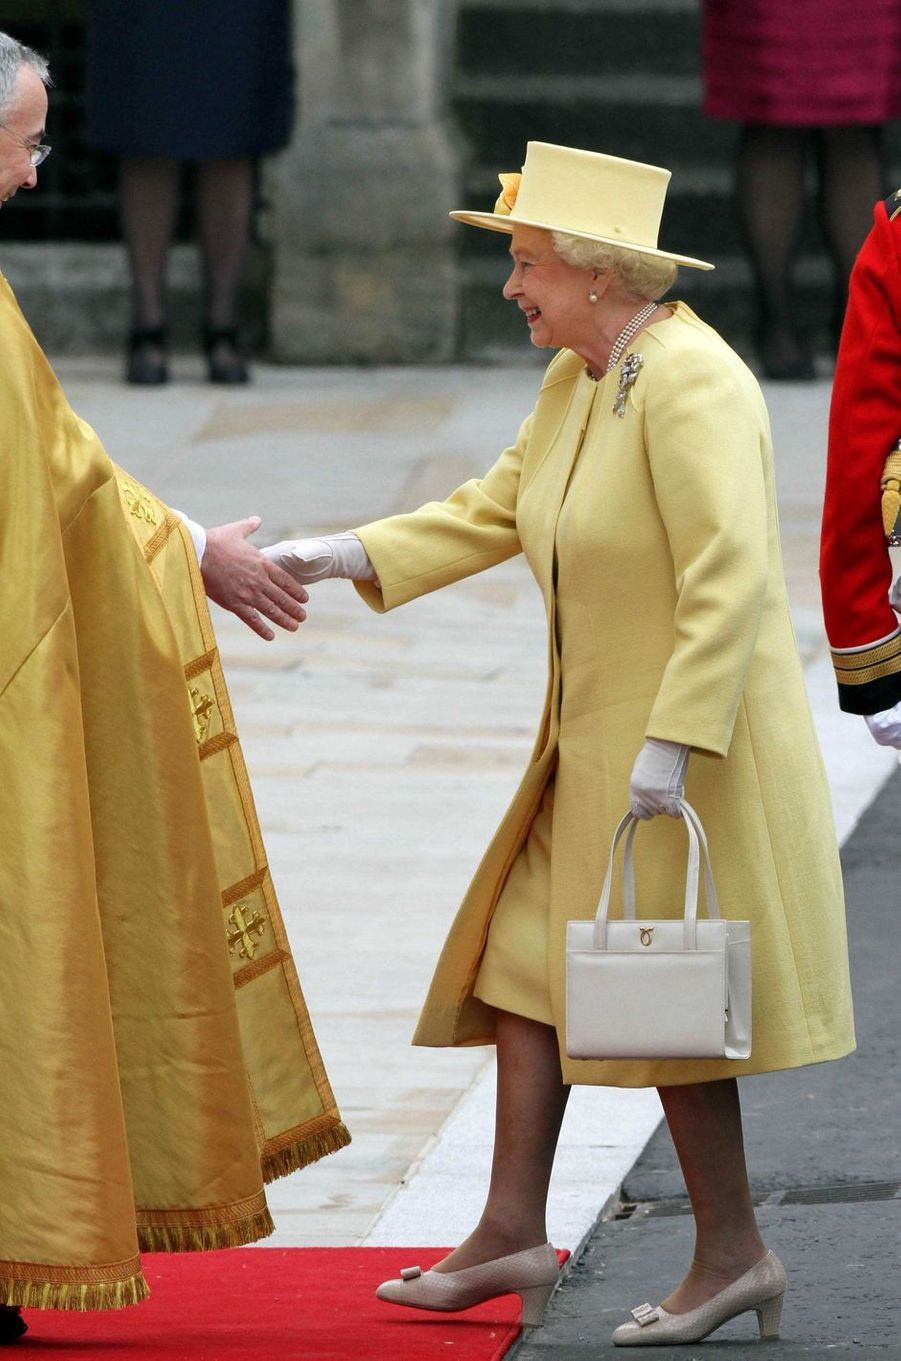 La reine Elizabeth II avec un sac Launer au mariage du prince William et de Kate Middleton, le 29 avril 2011